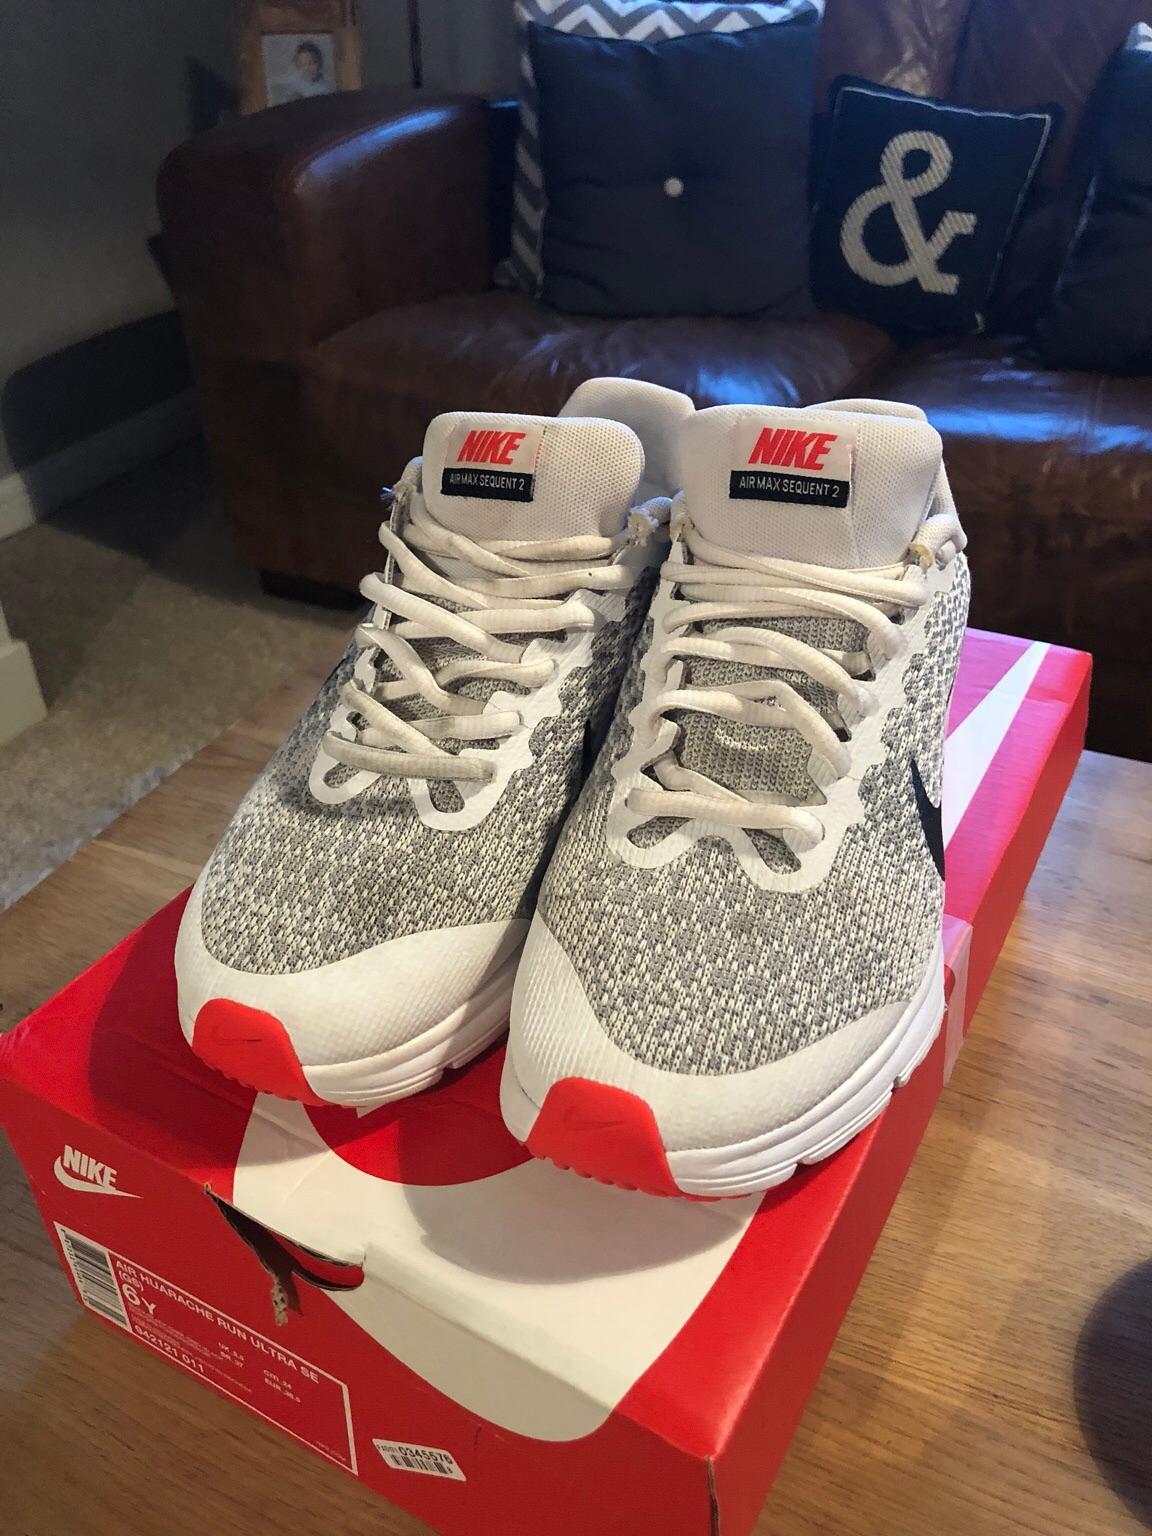 fe Felicidades Fértil  Nike Air Max Sequent 2 - Size UK 5** in NP Newport for £12.00 for ...